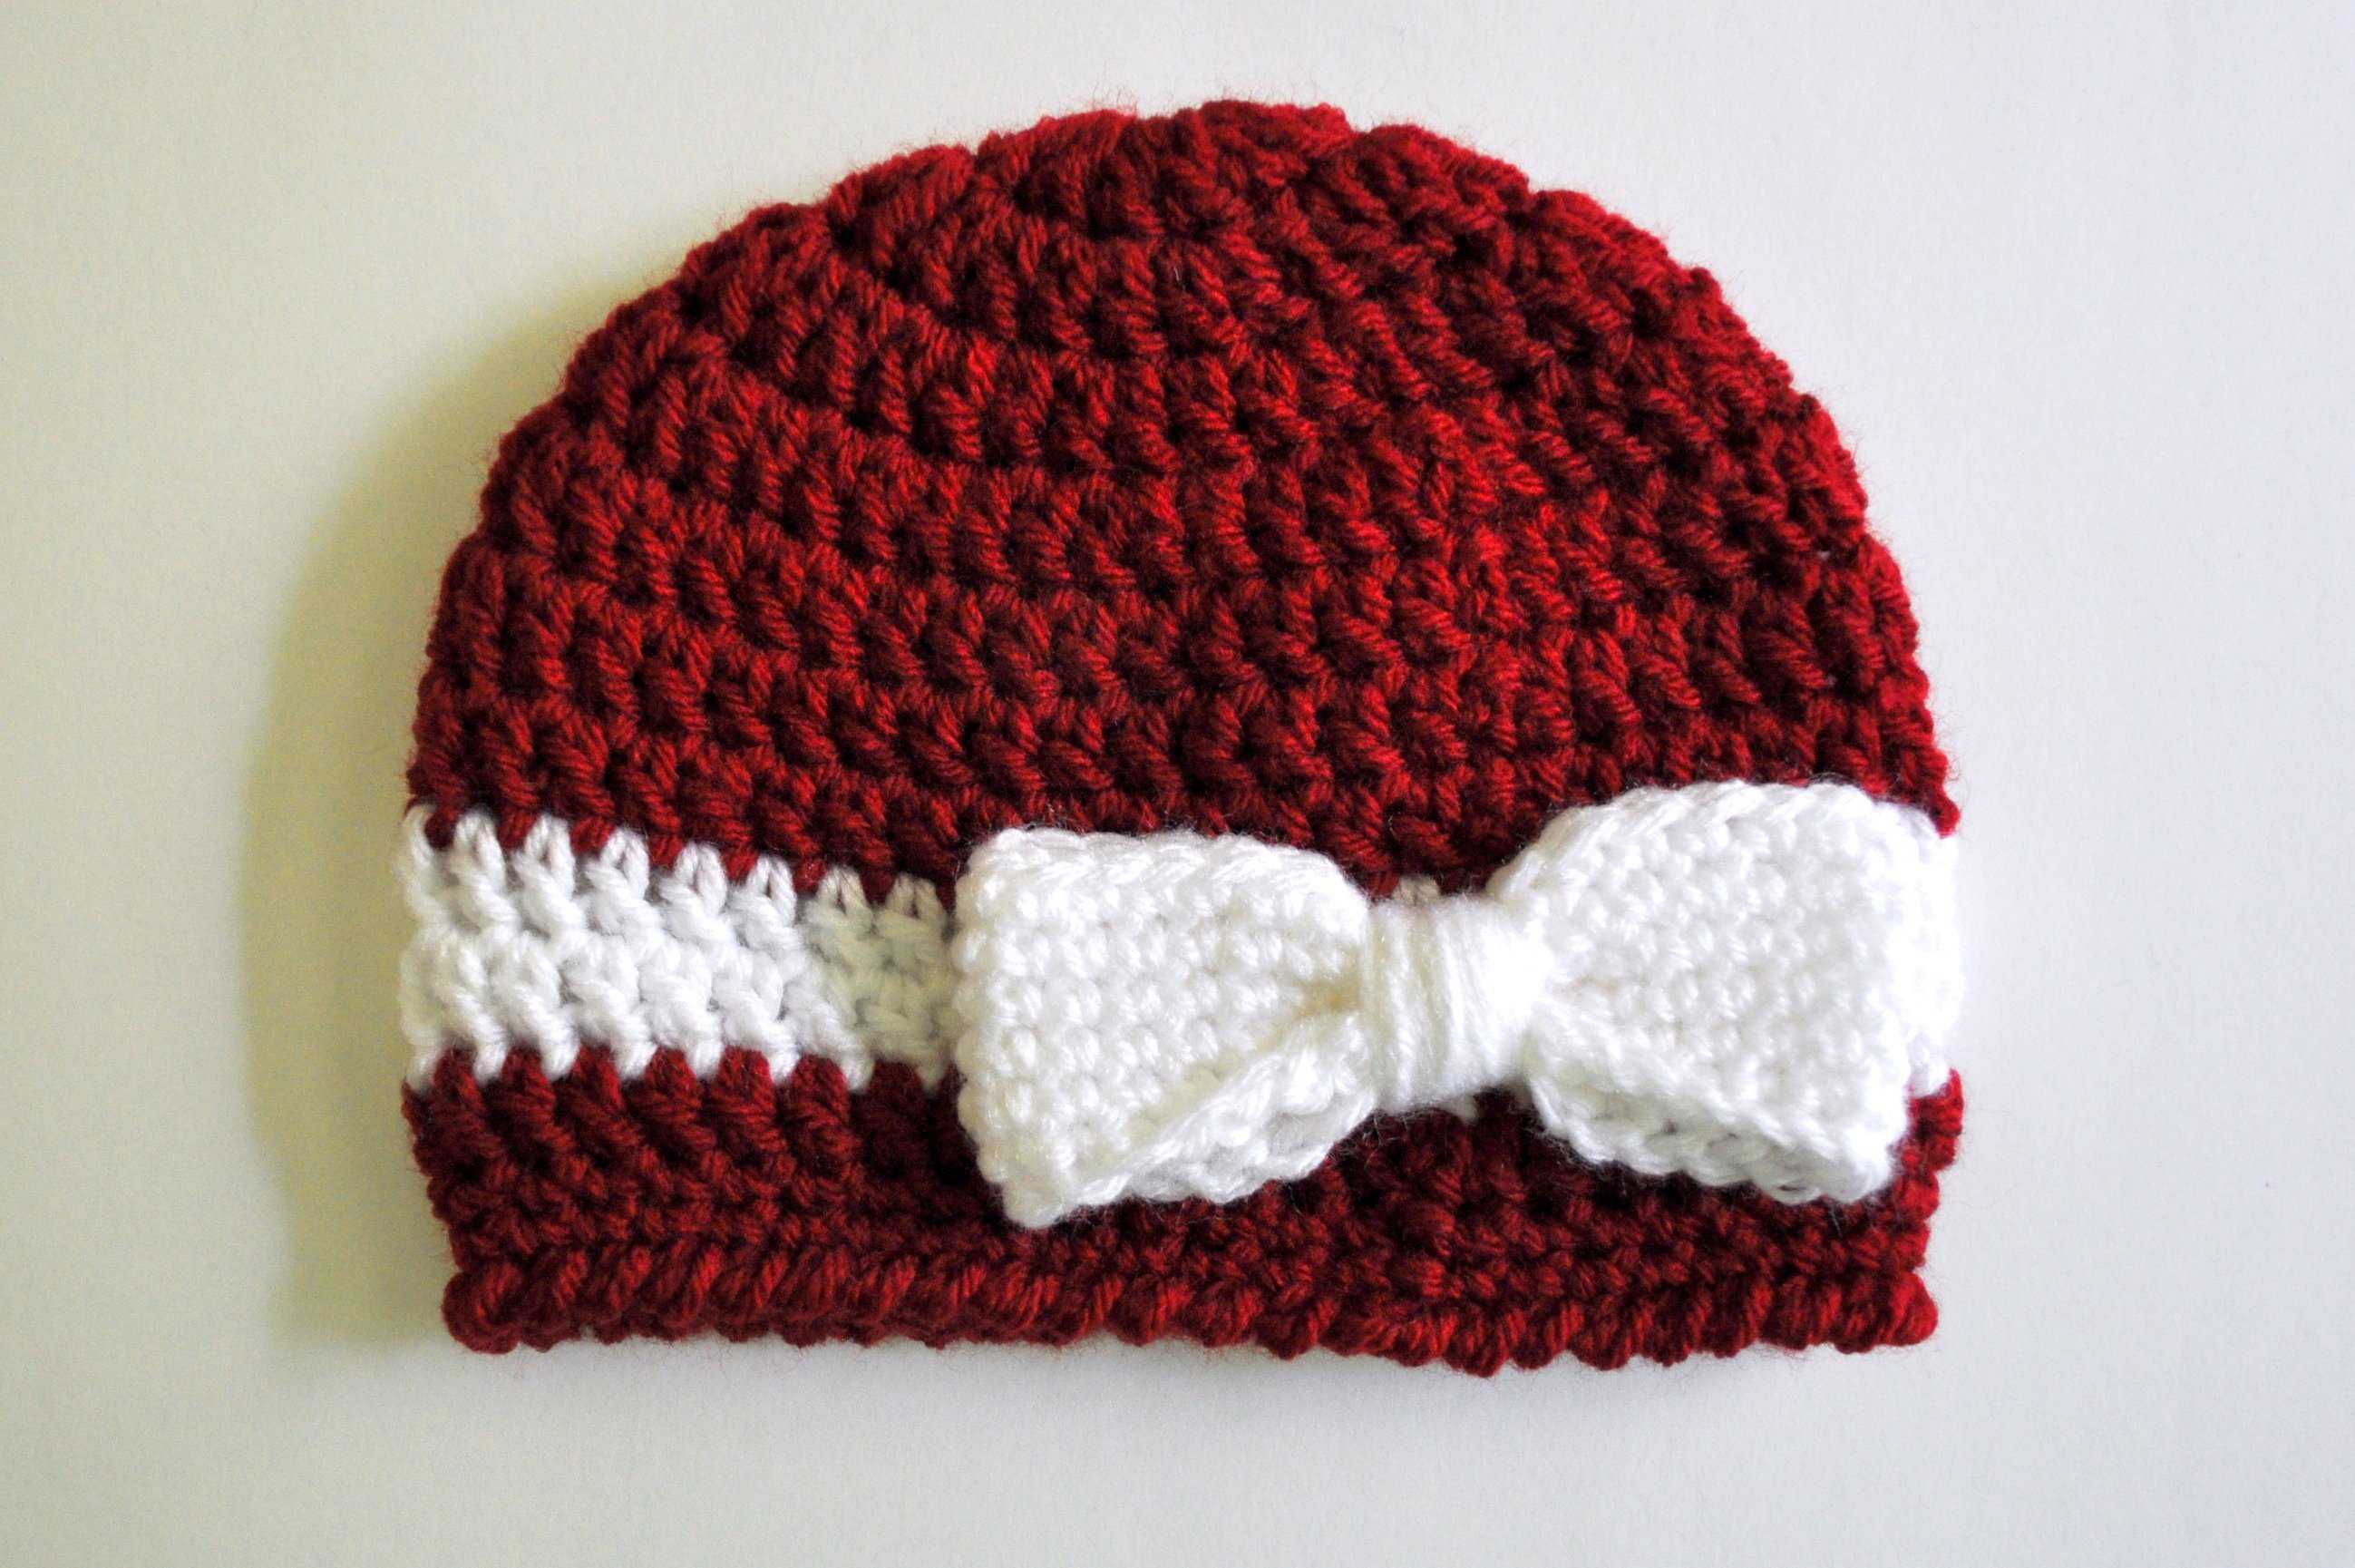 Free Crochet Patterns For Baby Toddler Hats : 25 Easy Crochet Bow Patterns Guide Patterns